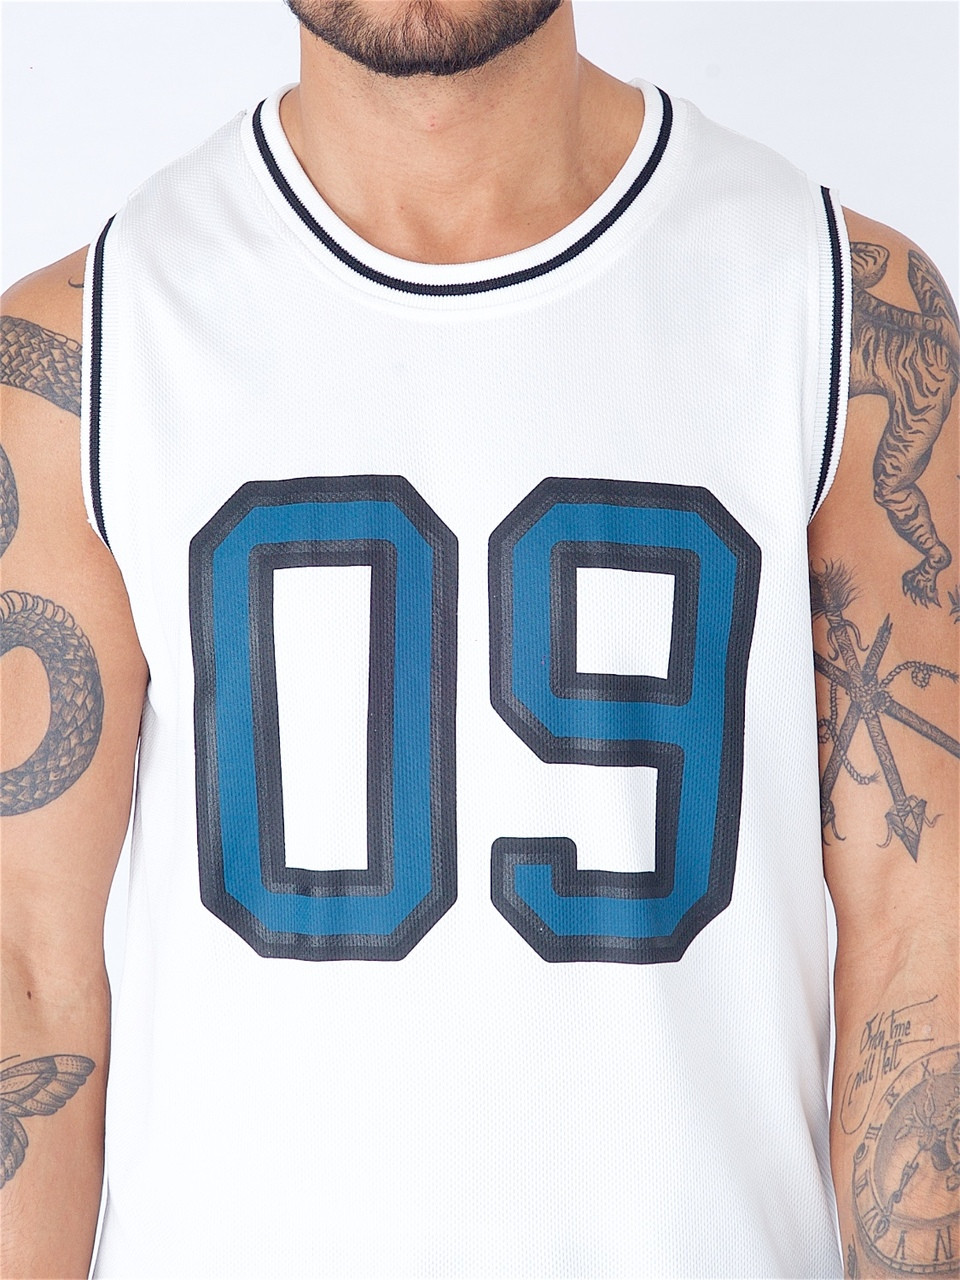 White Basketball Vest with Printed Number